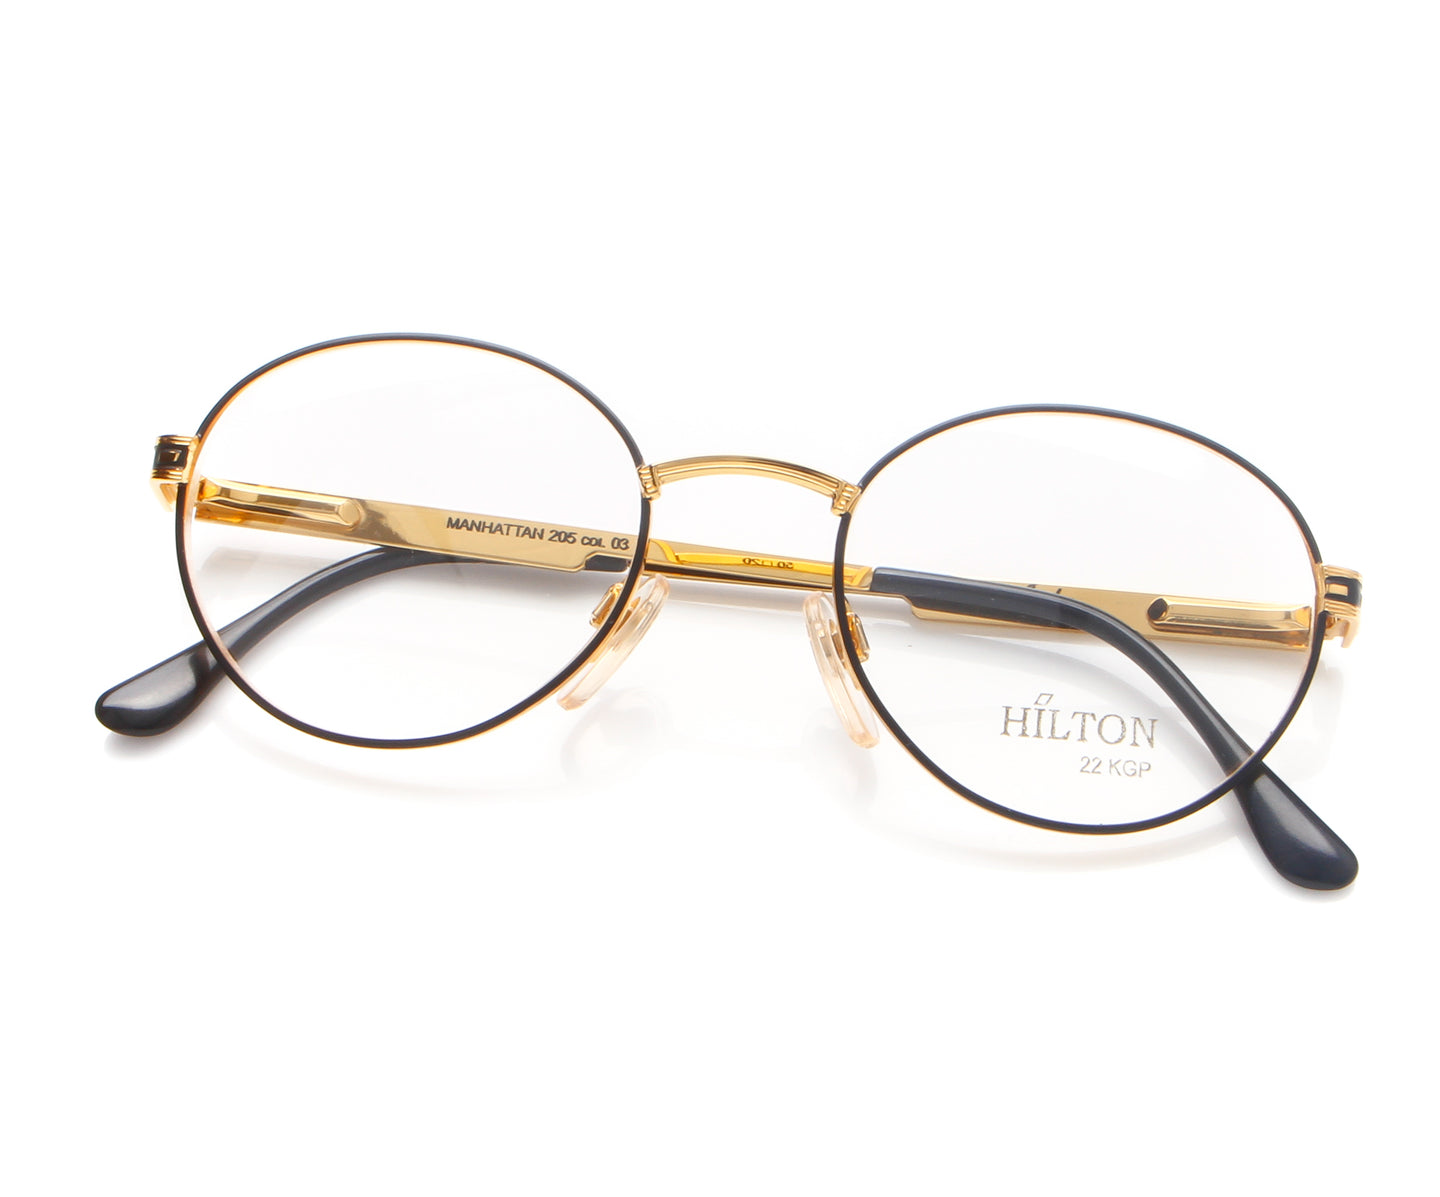 Vintage Hilton Manhattan 205 03 Thumb, Hilton , glasses frames, eyeglasses online, eyeglass frames, mens glasses, womens glasses, buy glasses online, designer eyeglasses, vintage sunglasses, retro sunglasses, vintage glasses, sunglass, eyeglass, glasses, lens, vintage frames company, vf